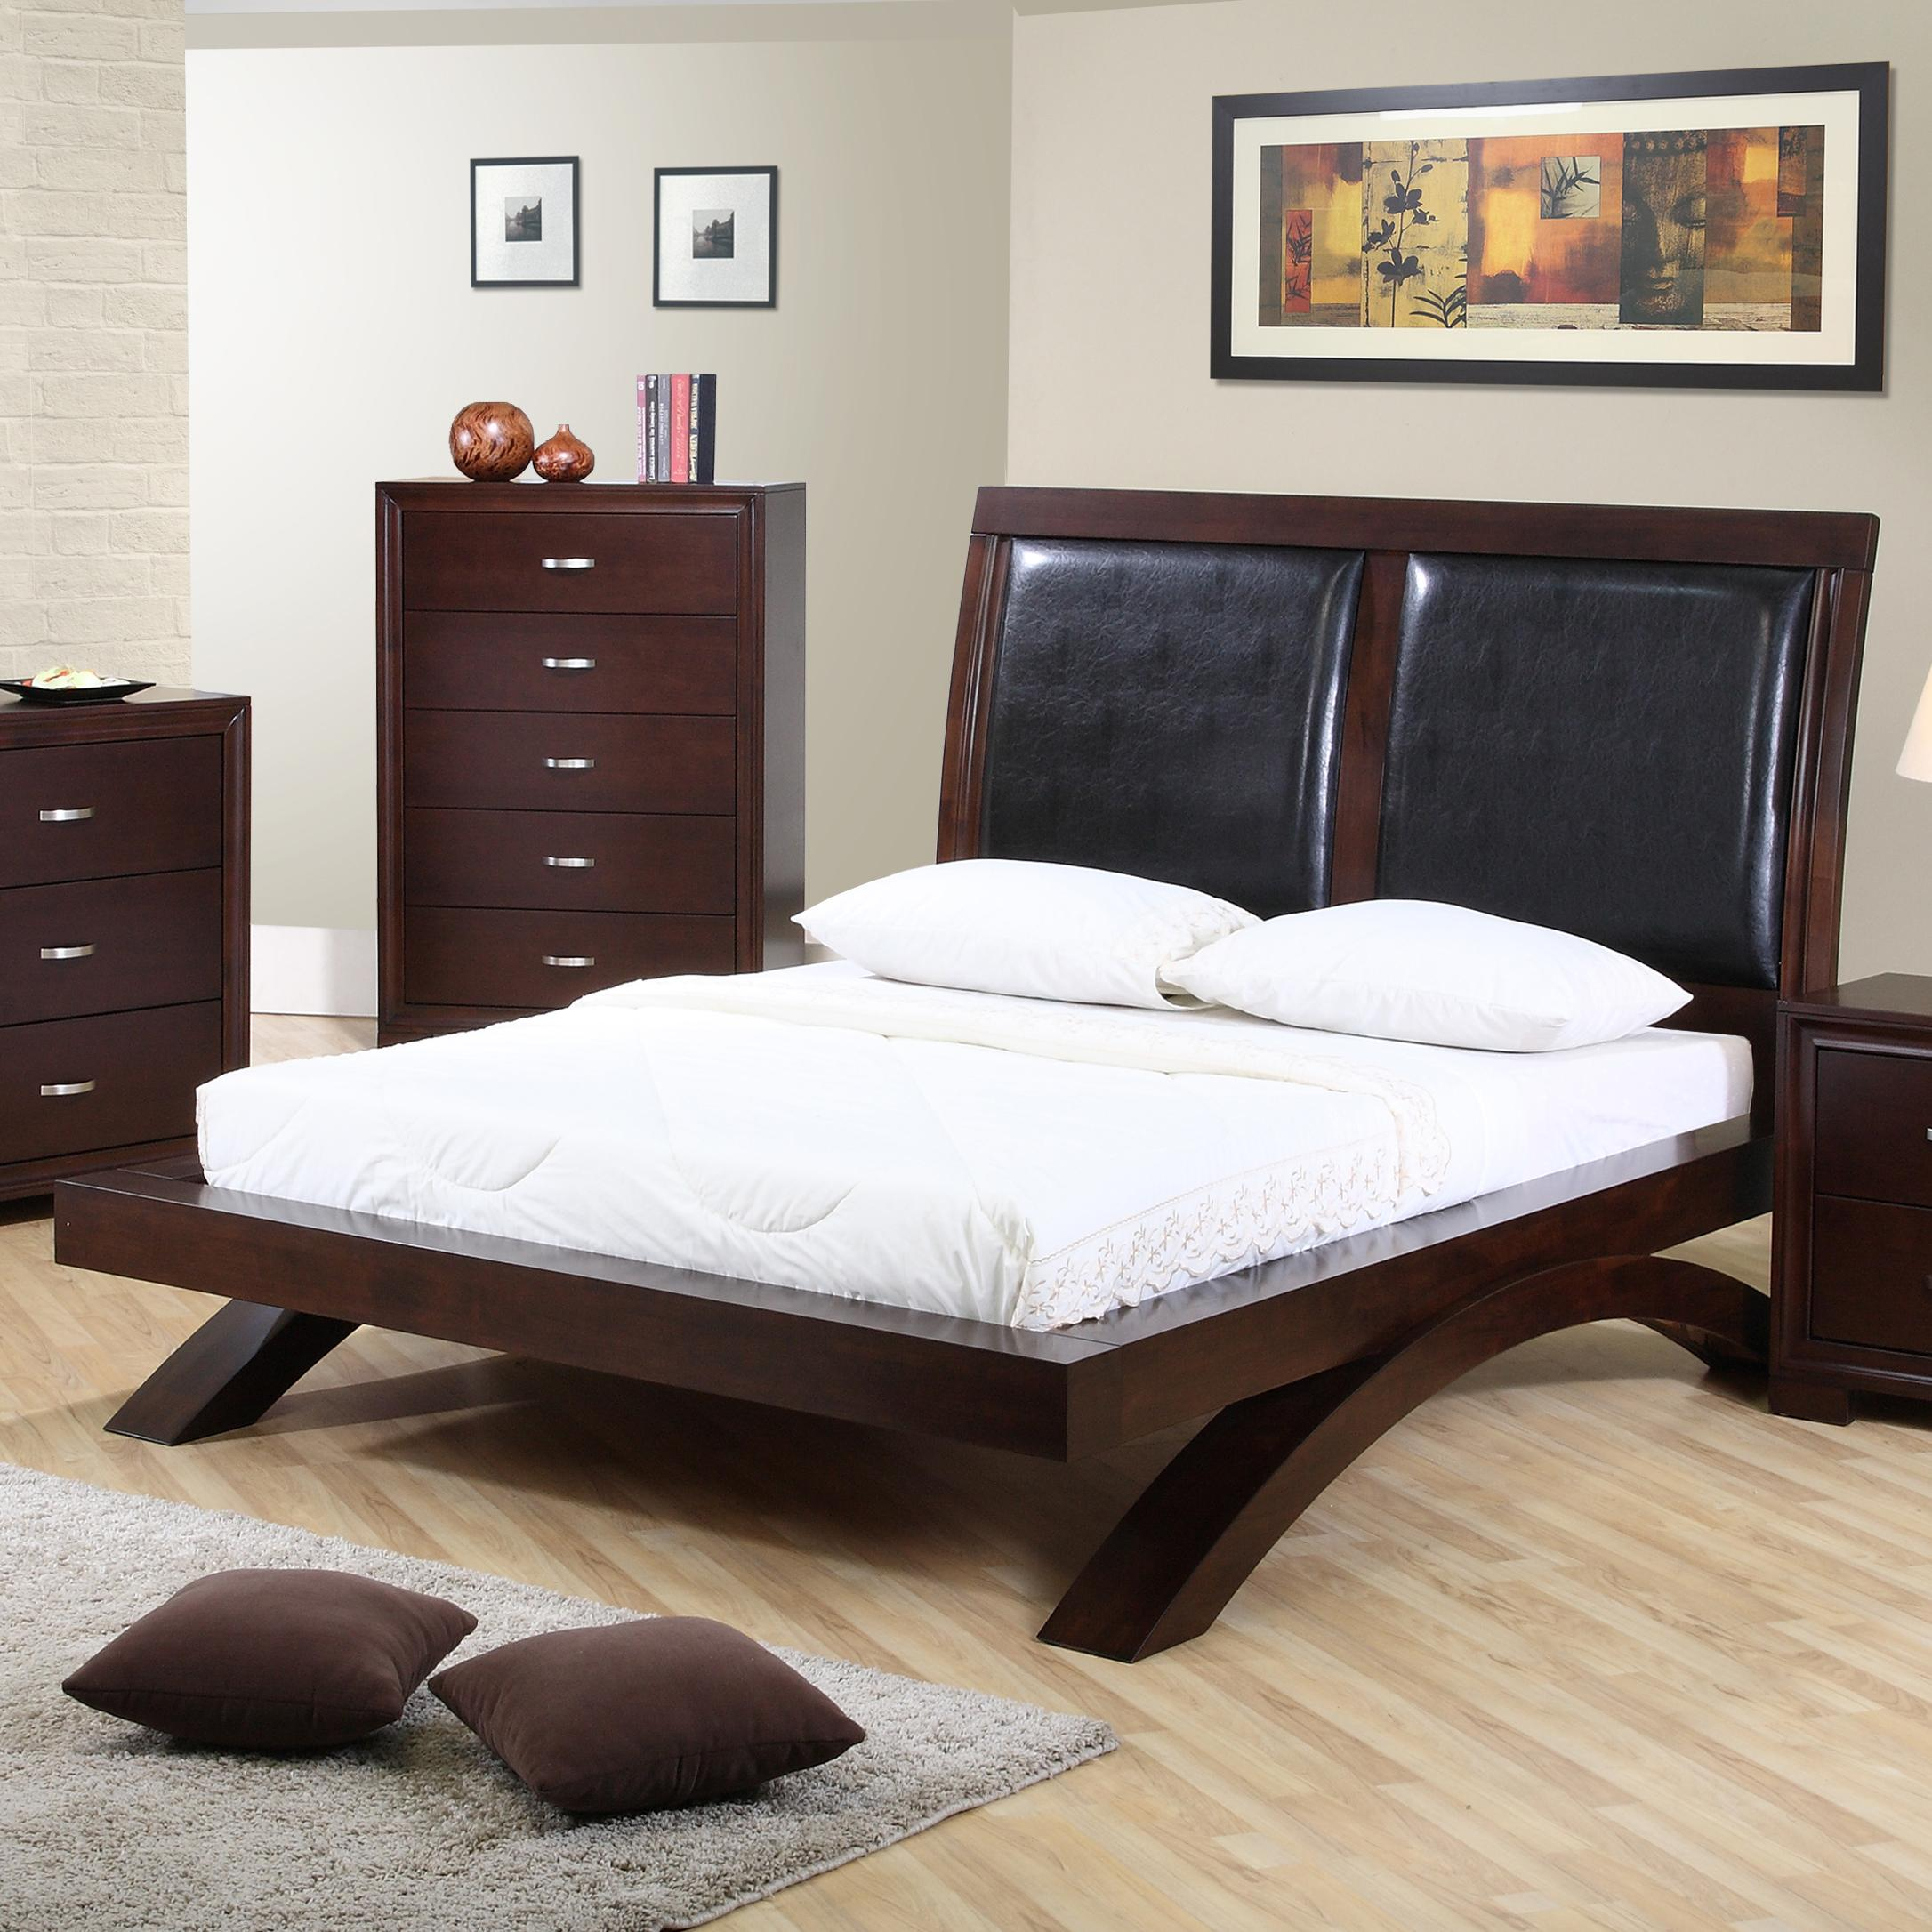 Bed headboard leather - Elements International Raven Queen Faux Leather Headboard Platform Bed Item Number Rv222qb